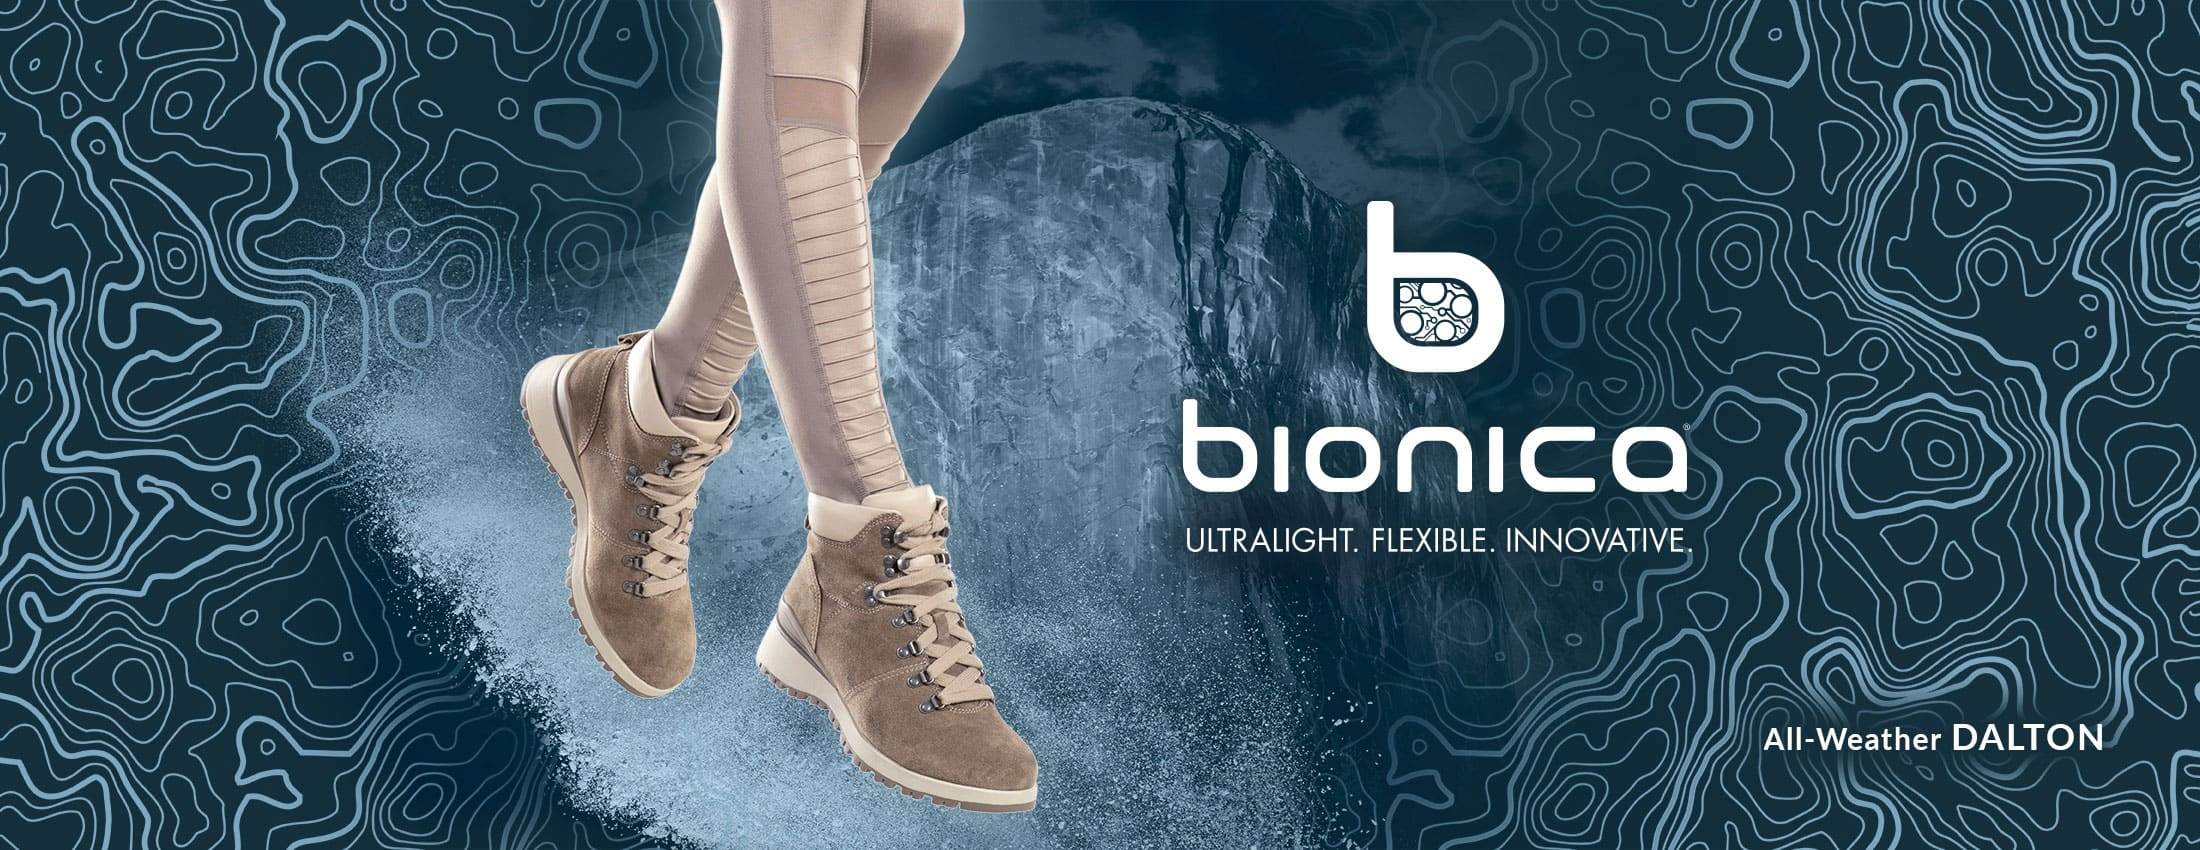 Bionica: Ultralight, Flexible, Innovative. Featured style: All-Weather Dalton boot, shown in light grey-cream.  Shop Dalton now